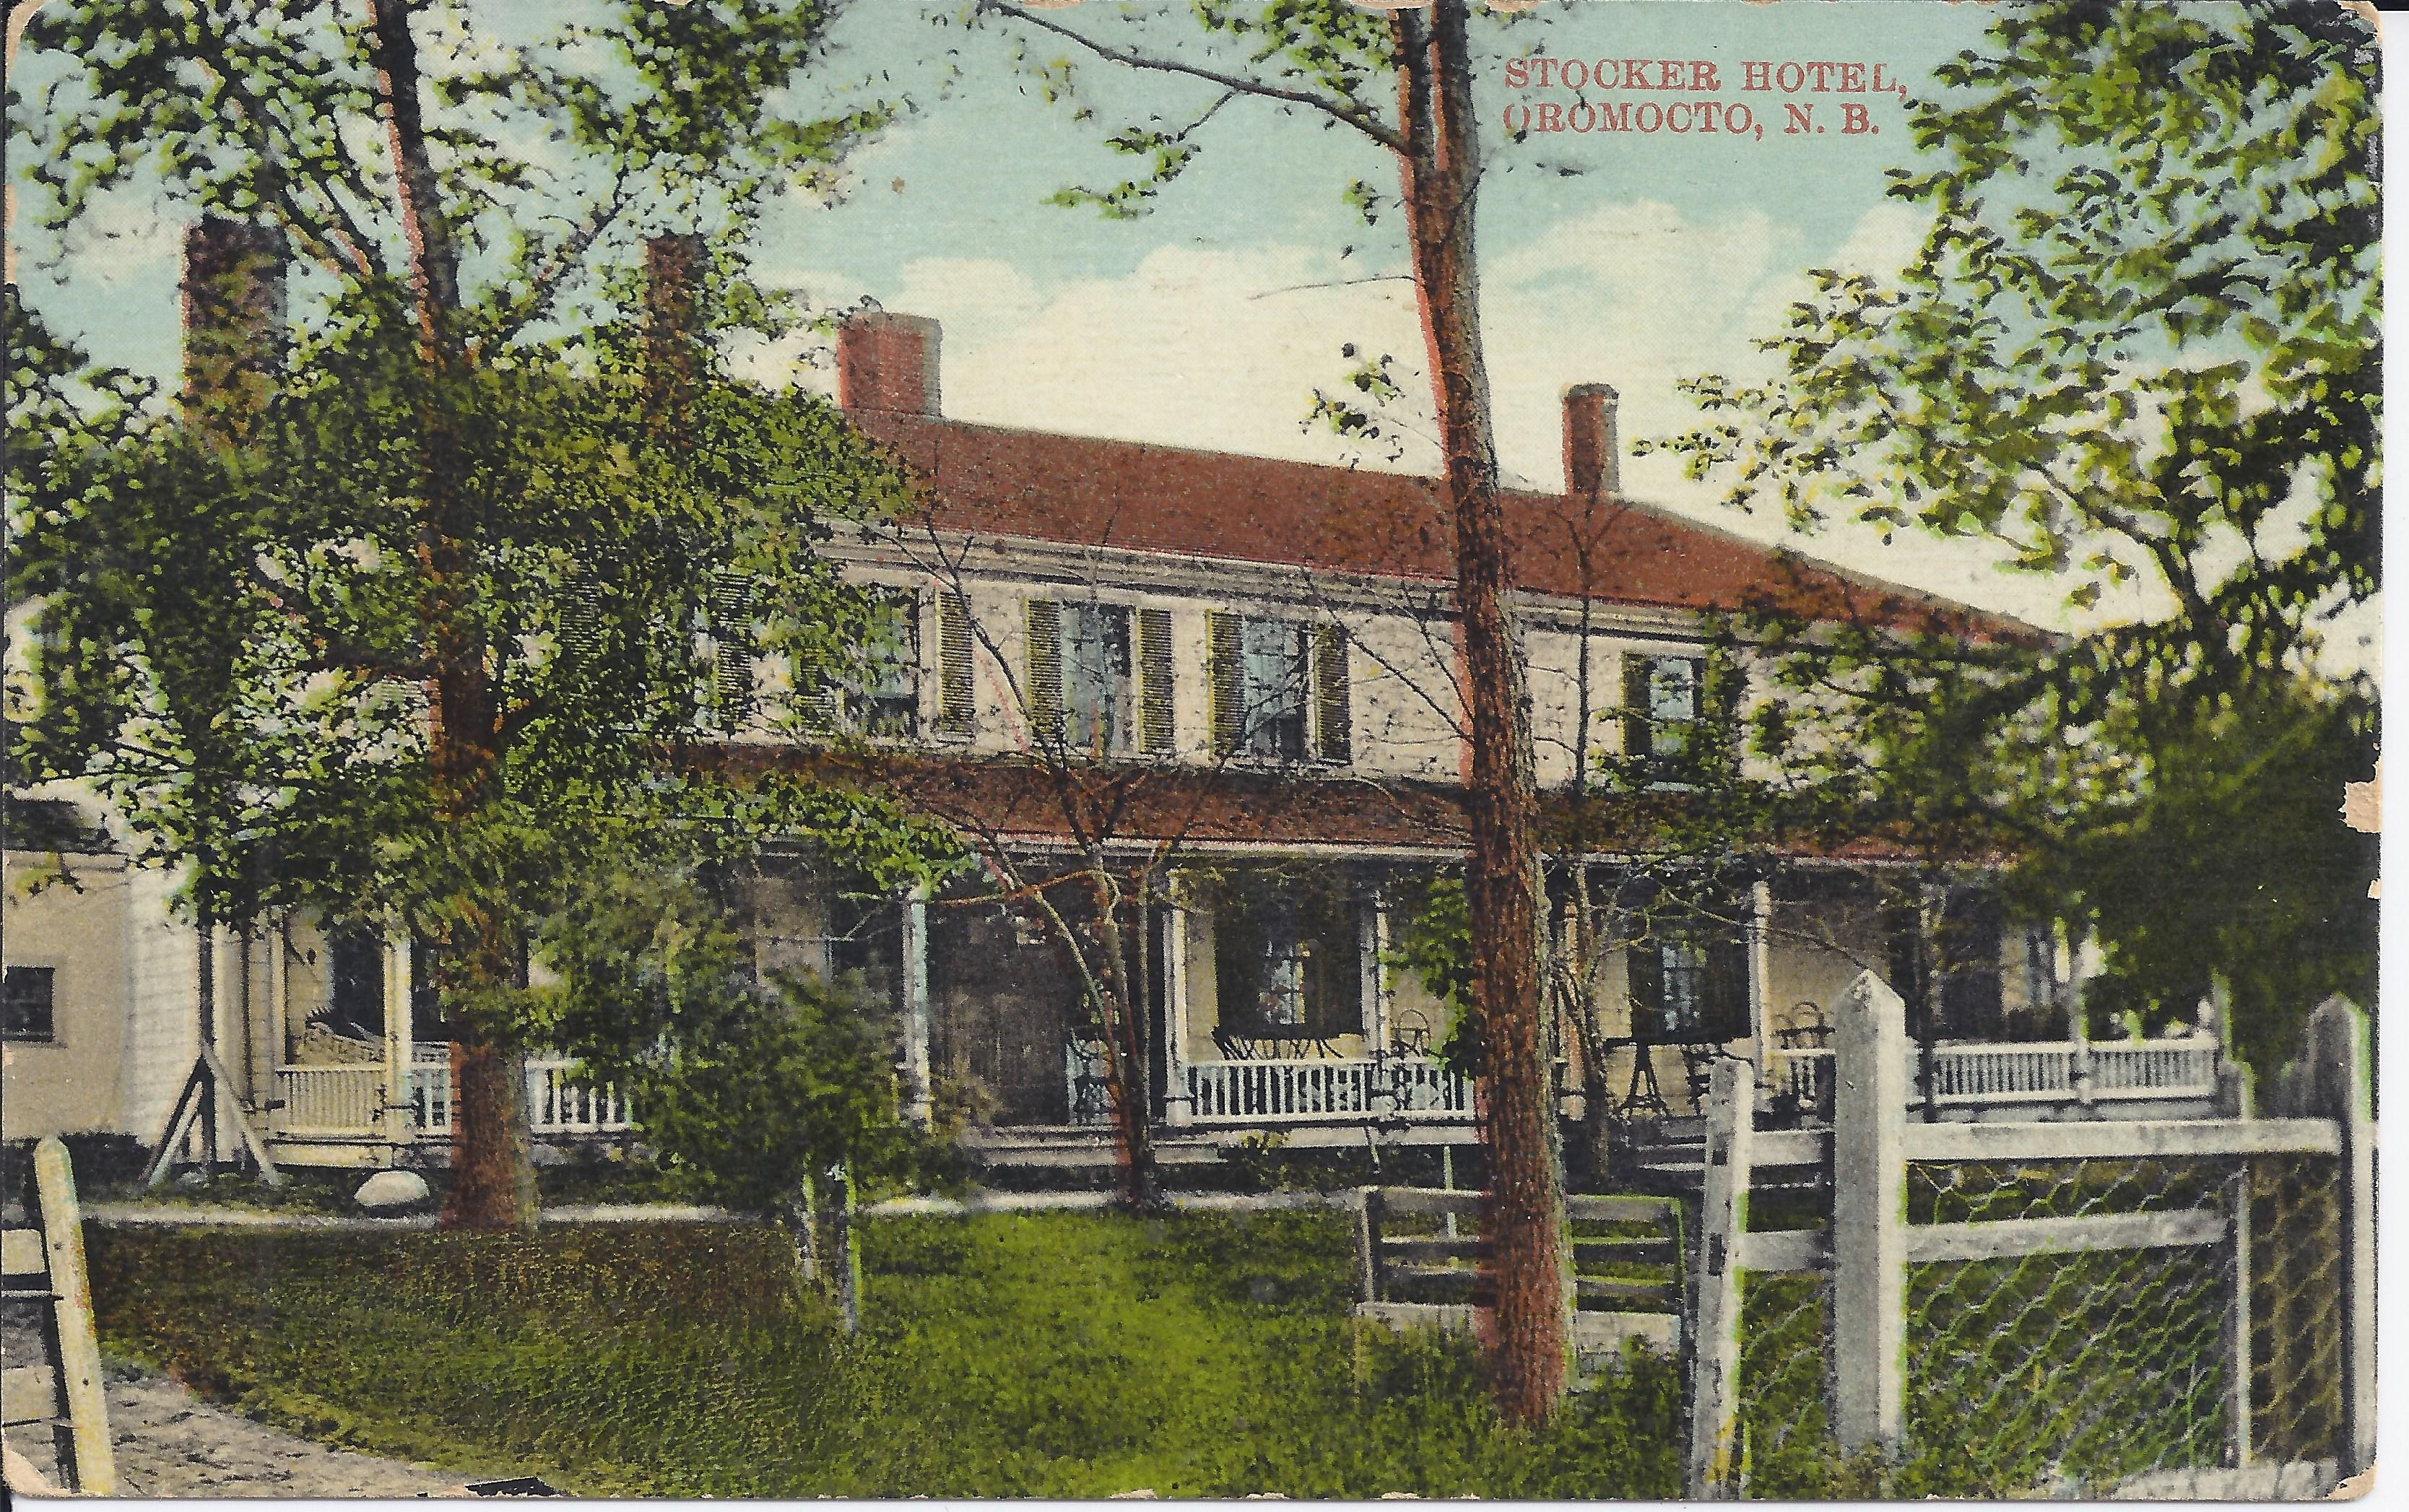 Stocker Hotel Oromocto N B Amelia S Cards Were Graciously Donated To The Museum By